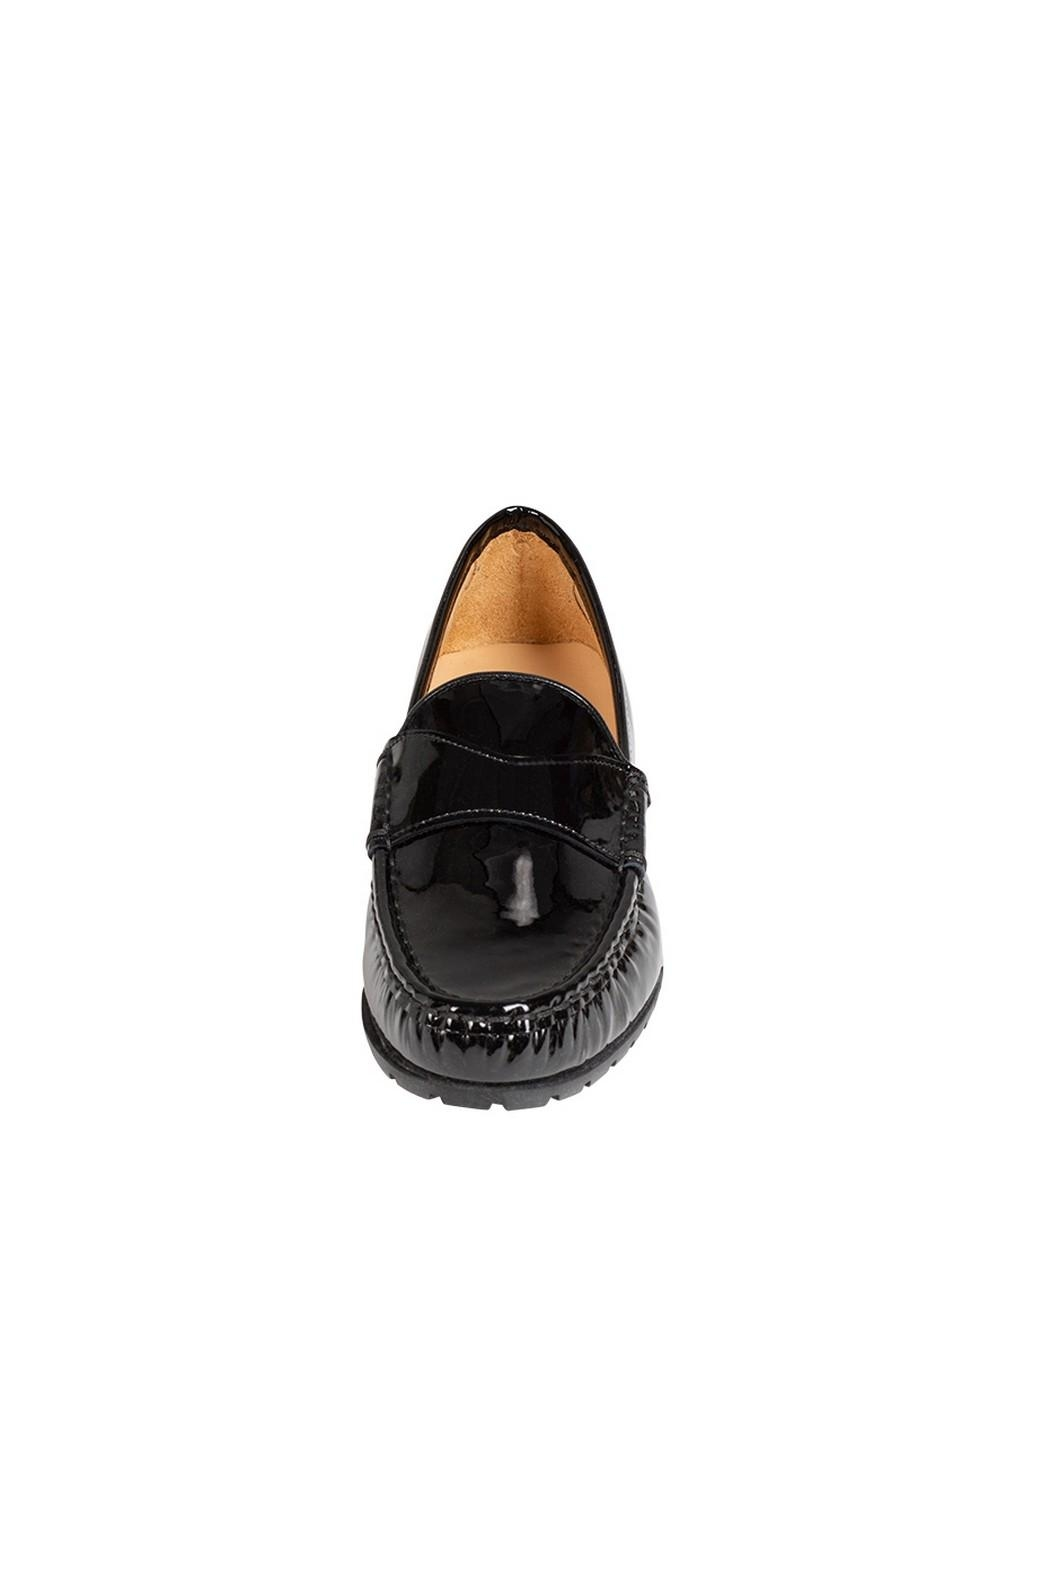 Pascucci Black Patent-Leather Loafer - Side Cropped Image